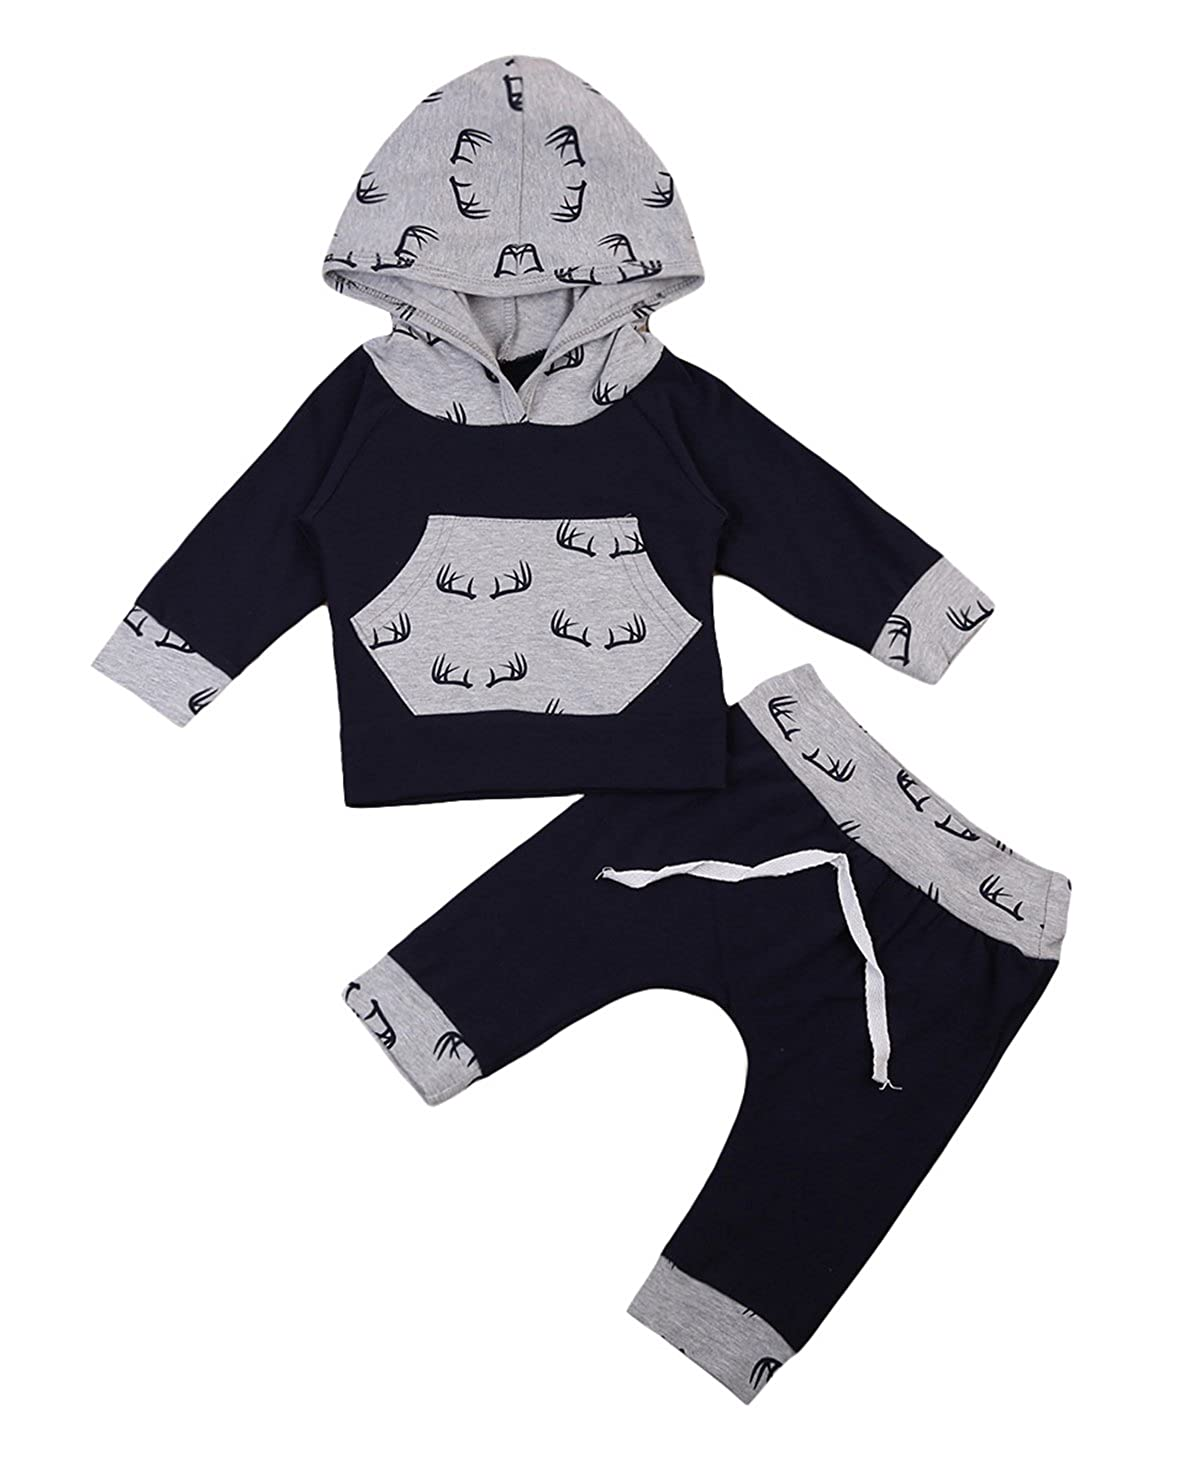 Cute Newborn Kids Baby Boy Girl Cotton Deer Pattern Hoodie Tops+Pants 2Pc Outfit Set